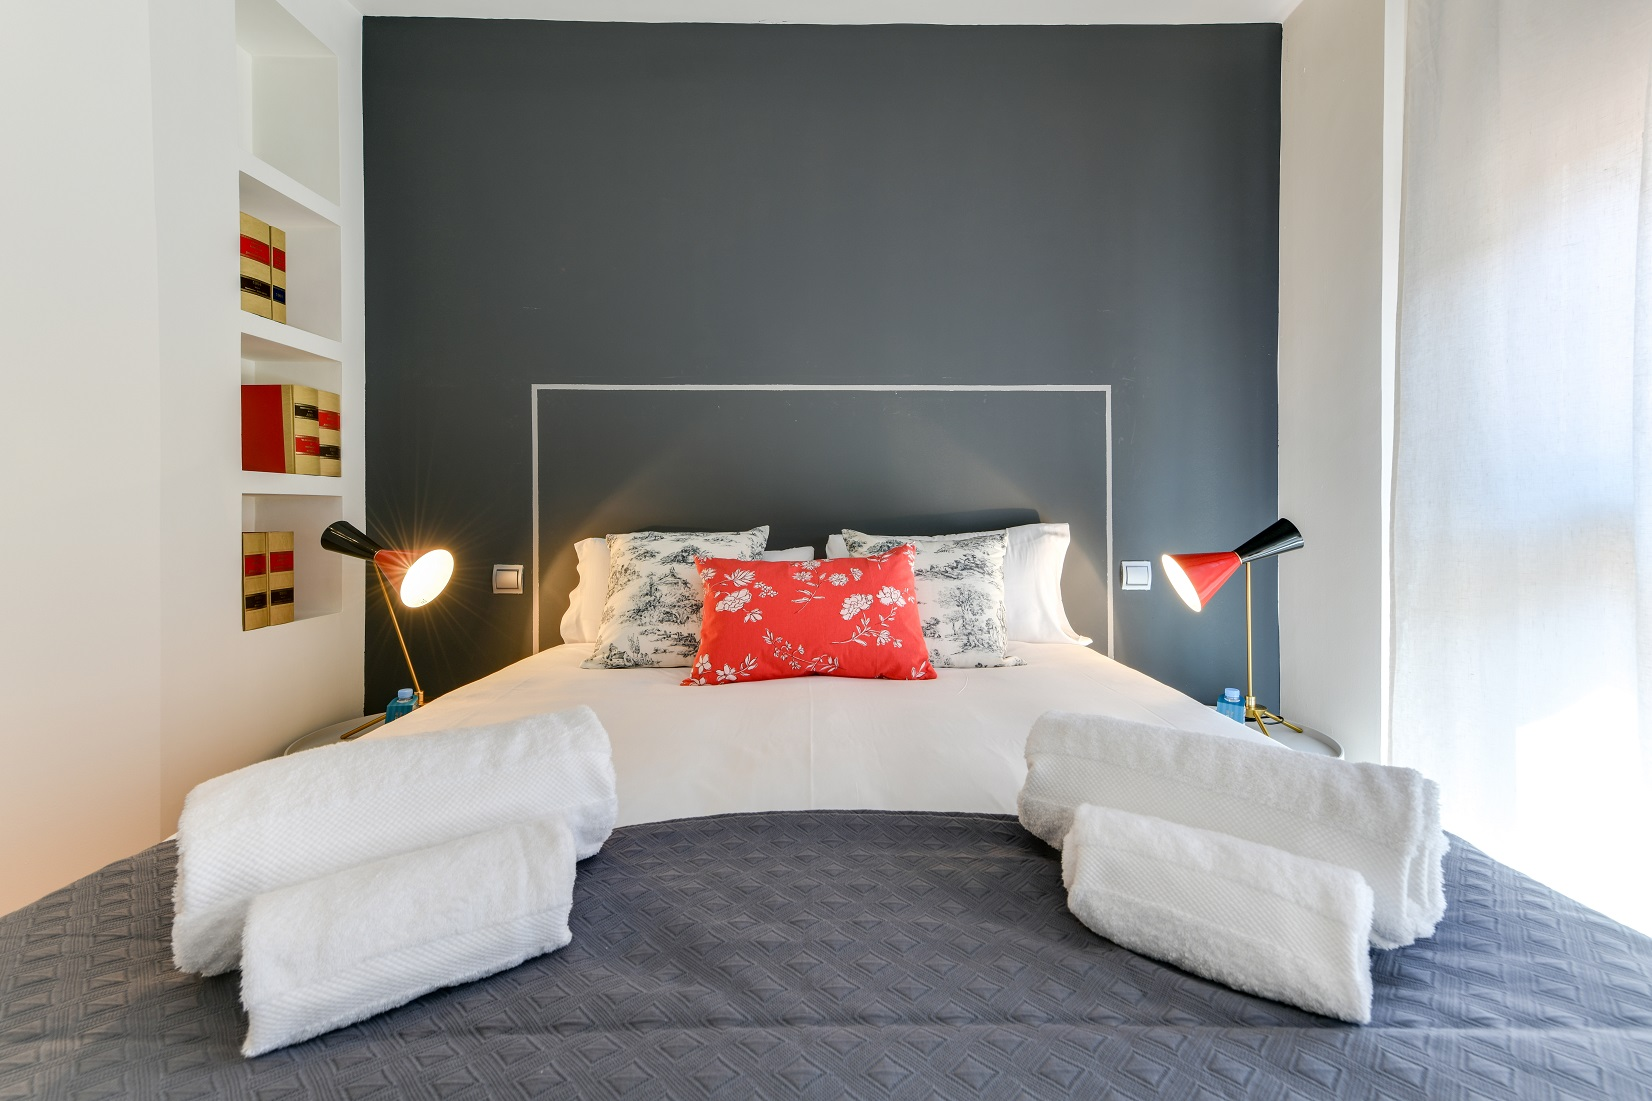 Bedroom at the Don Pedro Apartments - Citybase Apartments